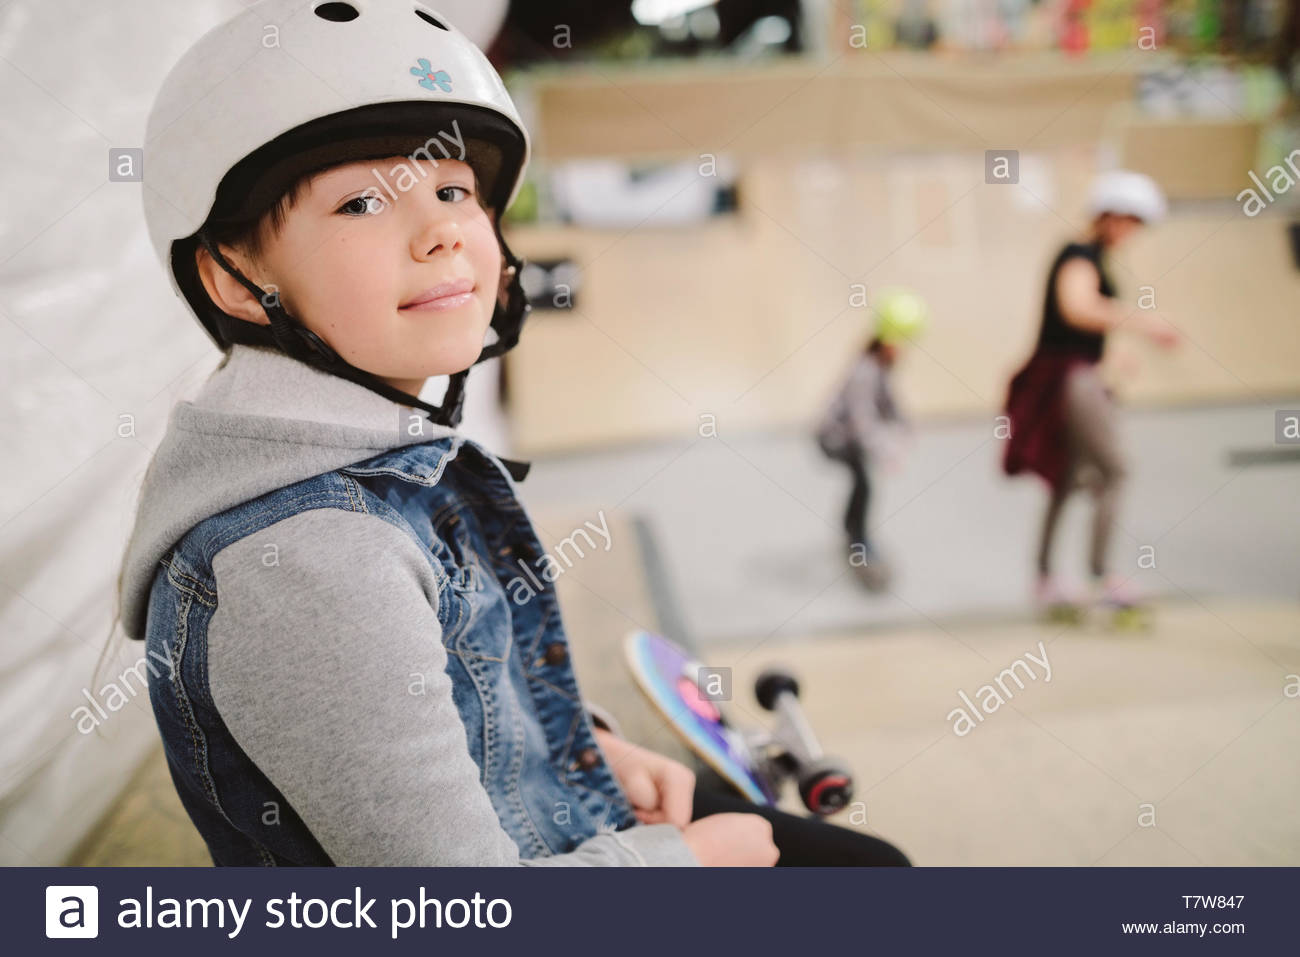 Portrait confident girl at indoor skate park - Stock Image